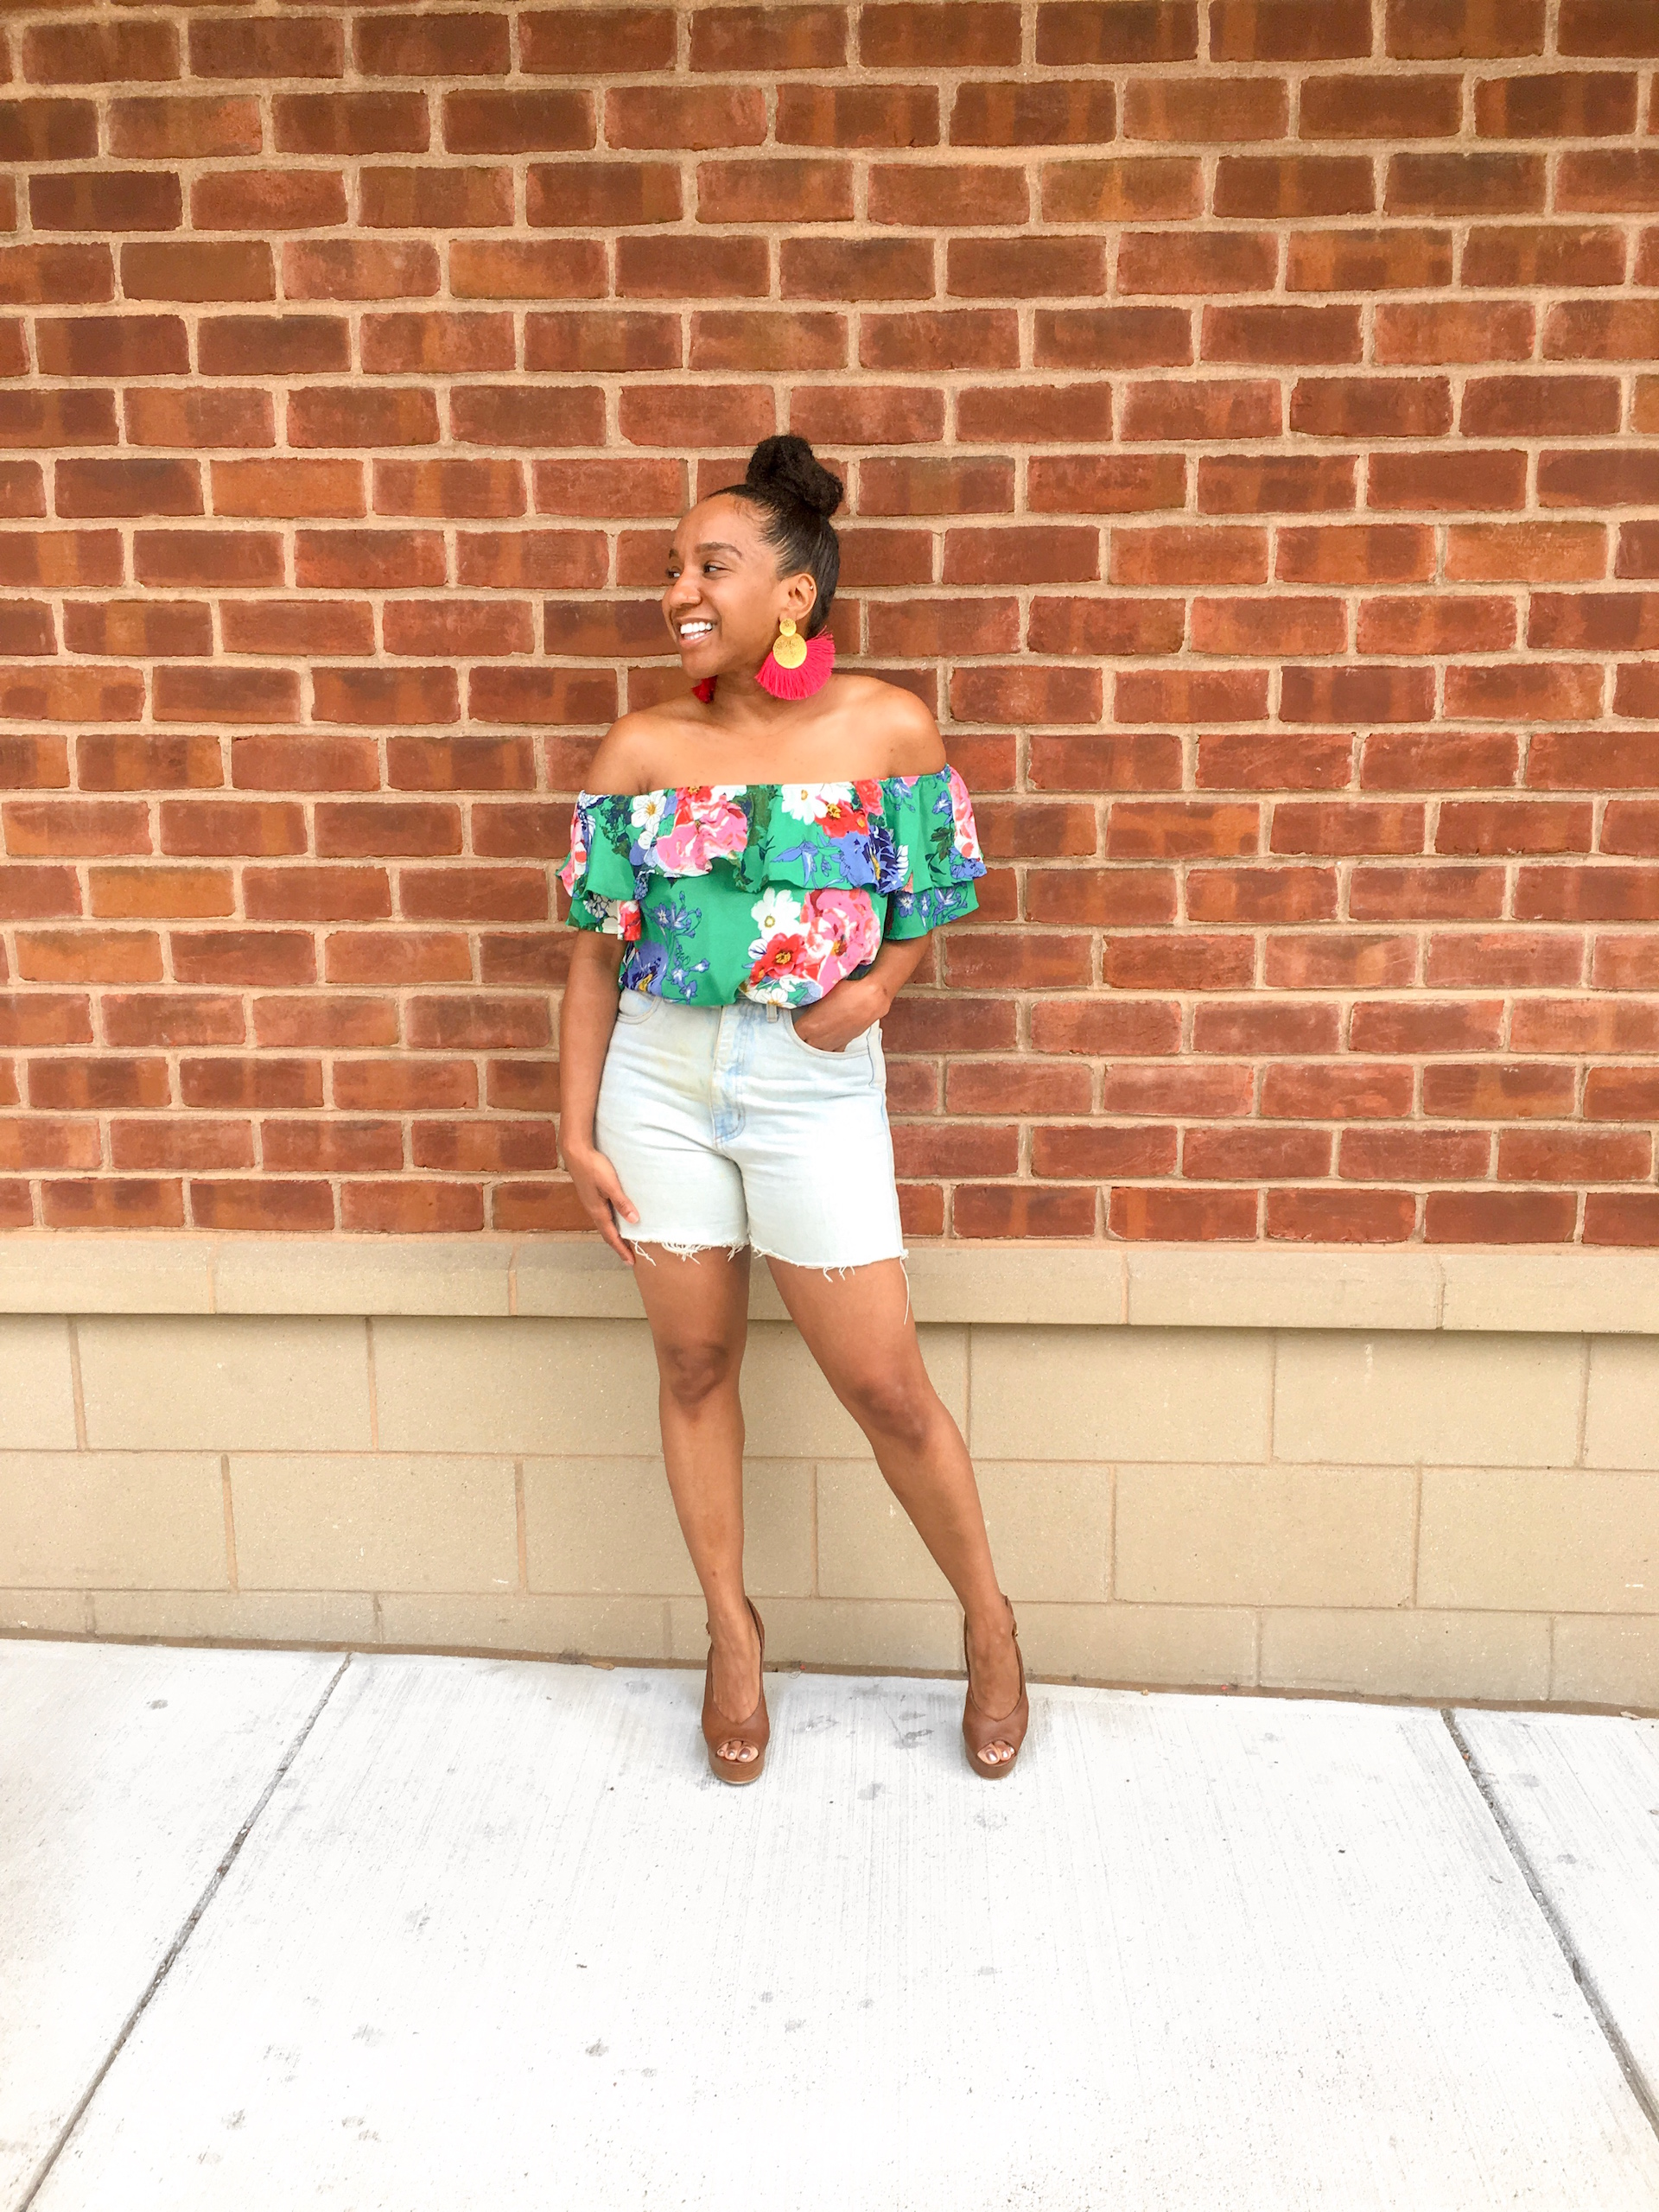 Tatiana in floral off the shoulder top against brick wall